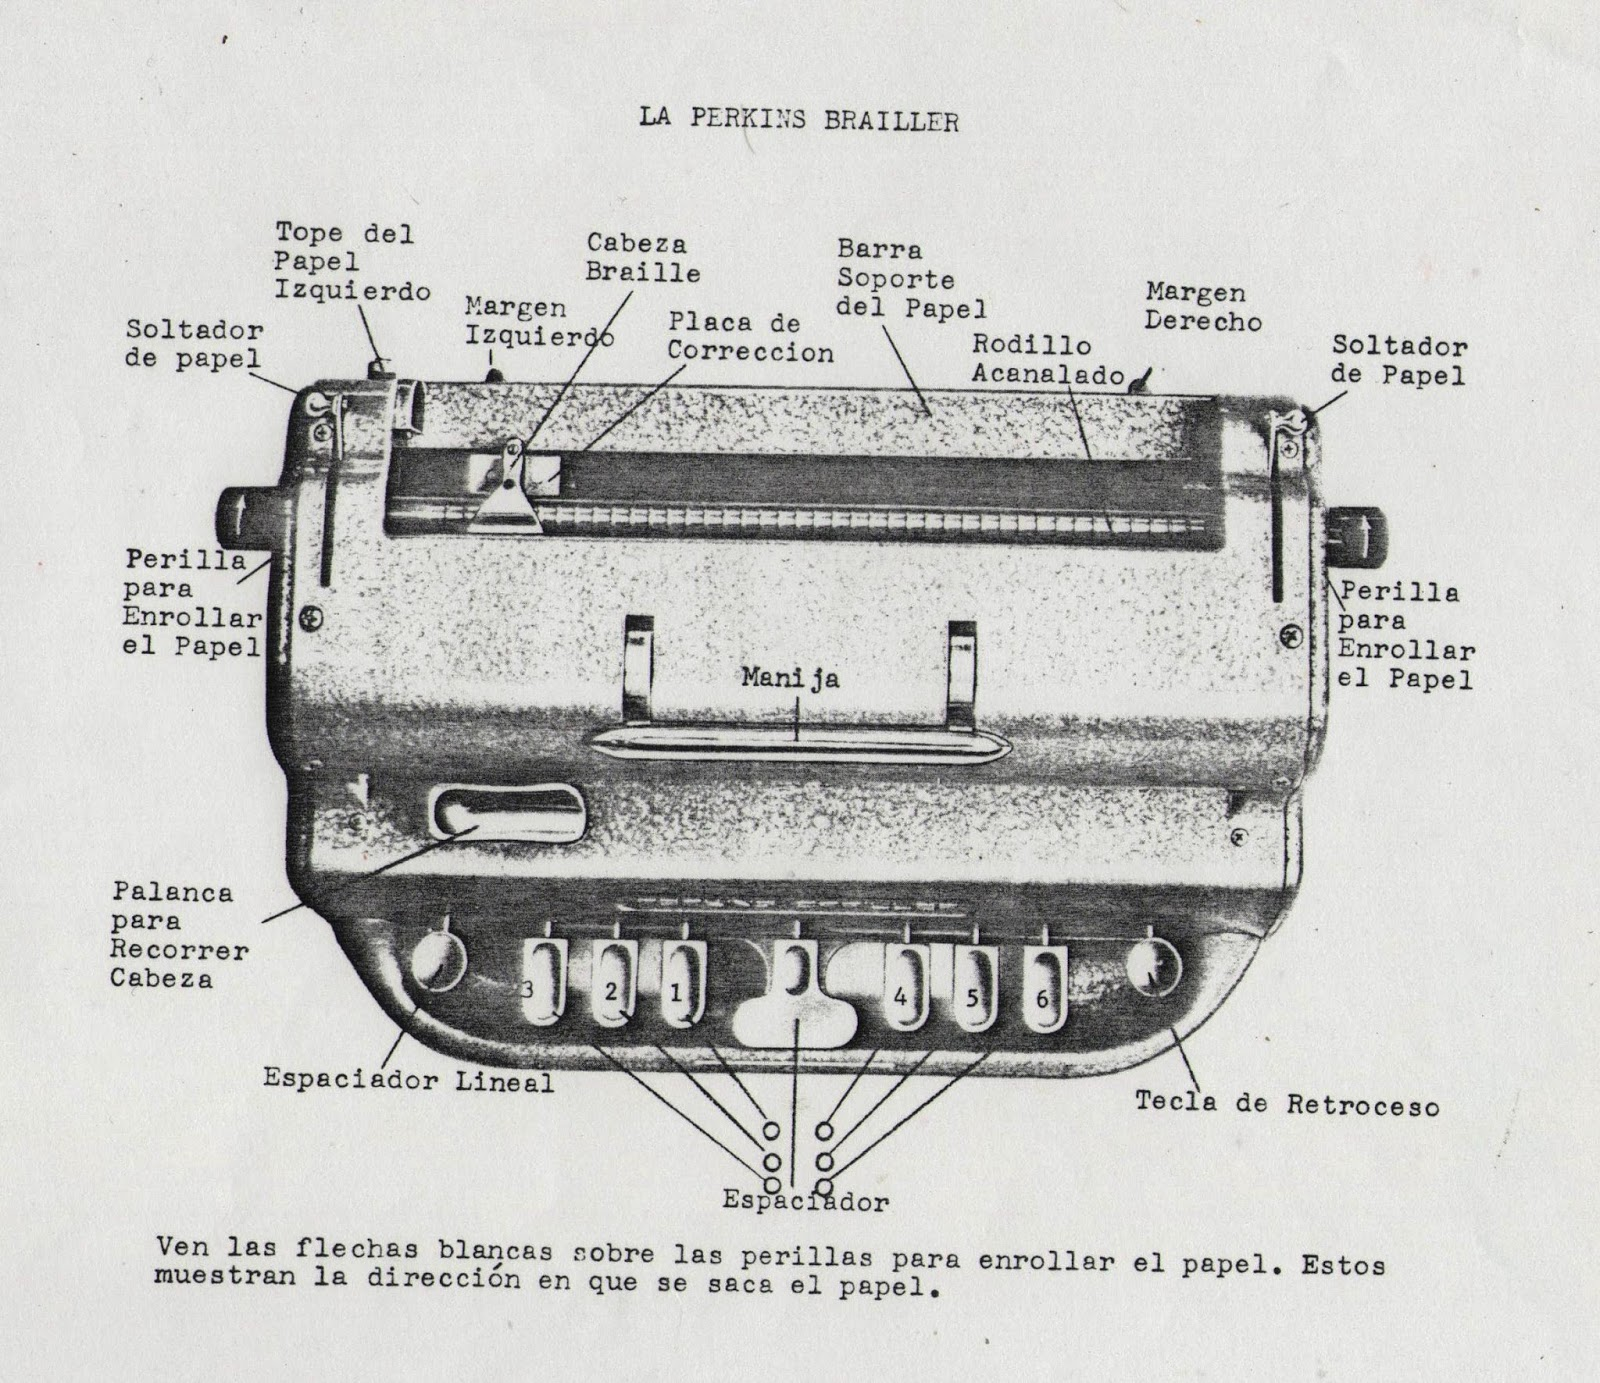 Las Partes De La Maquina De Escribir Manual additionally Perkins Parts Diagram further Best3i in addition Part2 further Perkins Brailler. on perkins brailler diagram